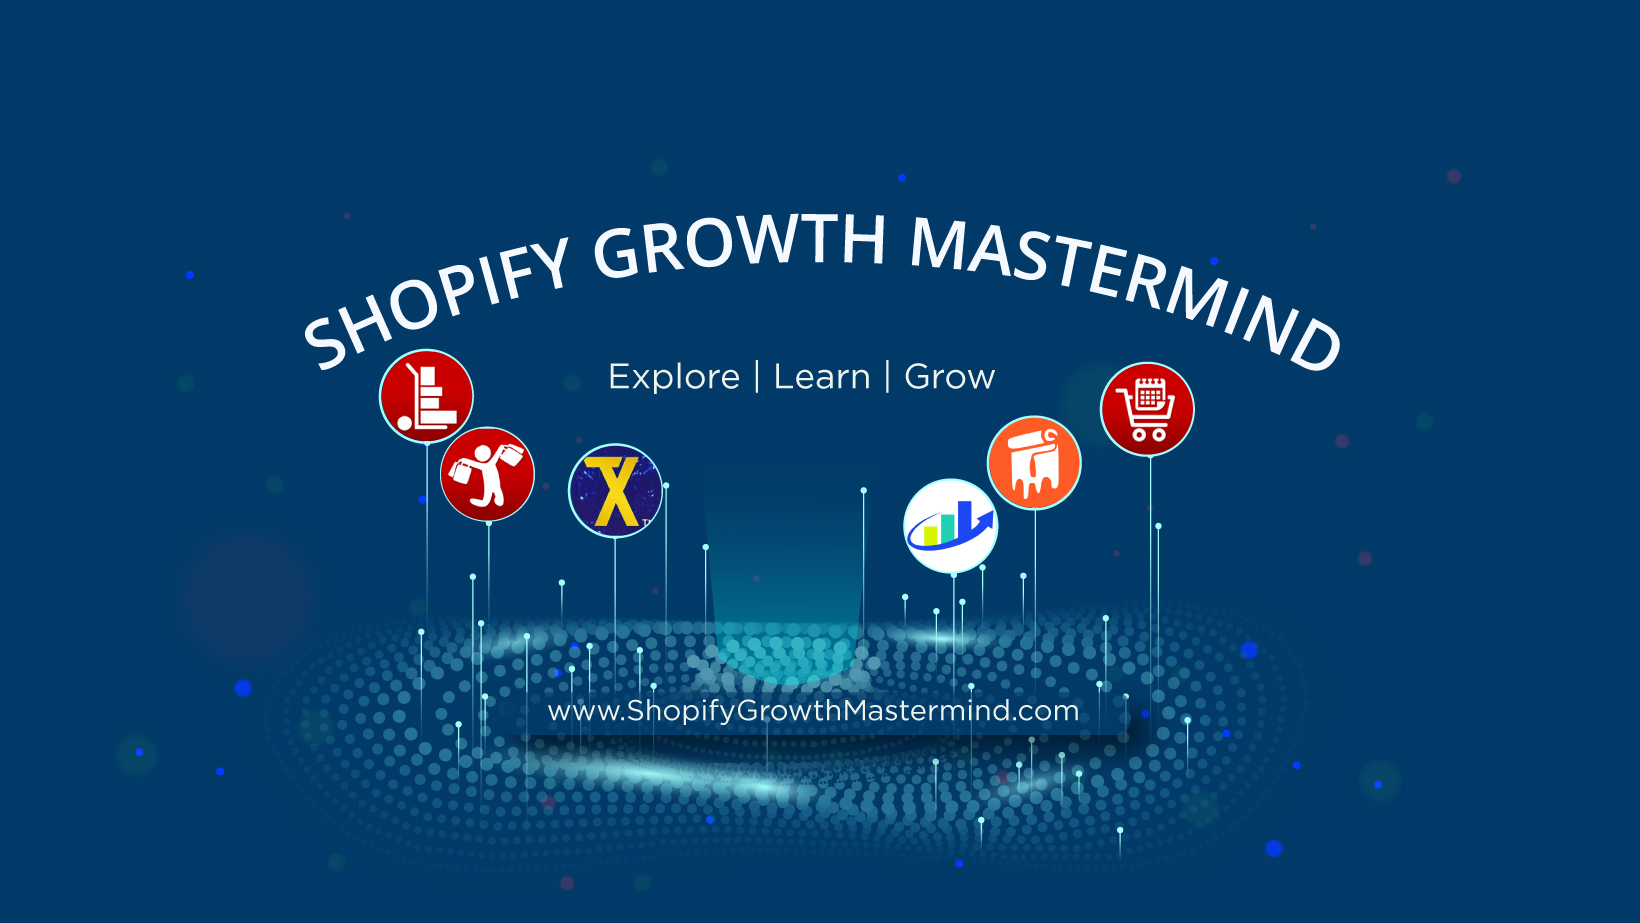 Shopify Growth Mastermind- eCommerce Facebook Groups 2021